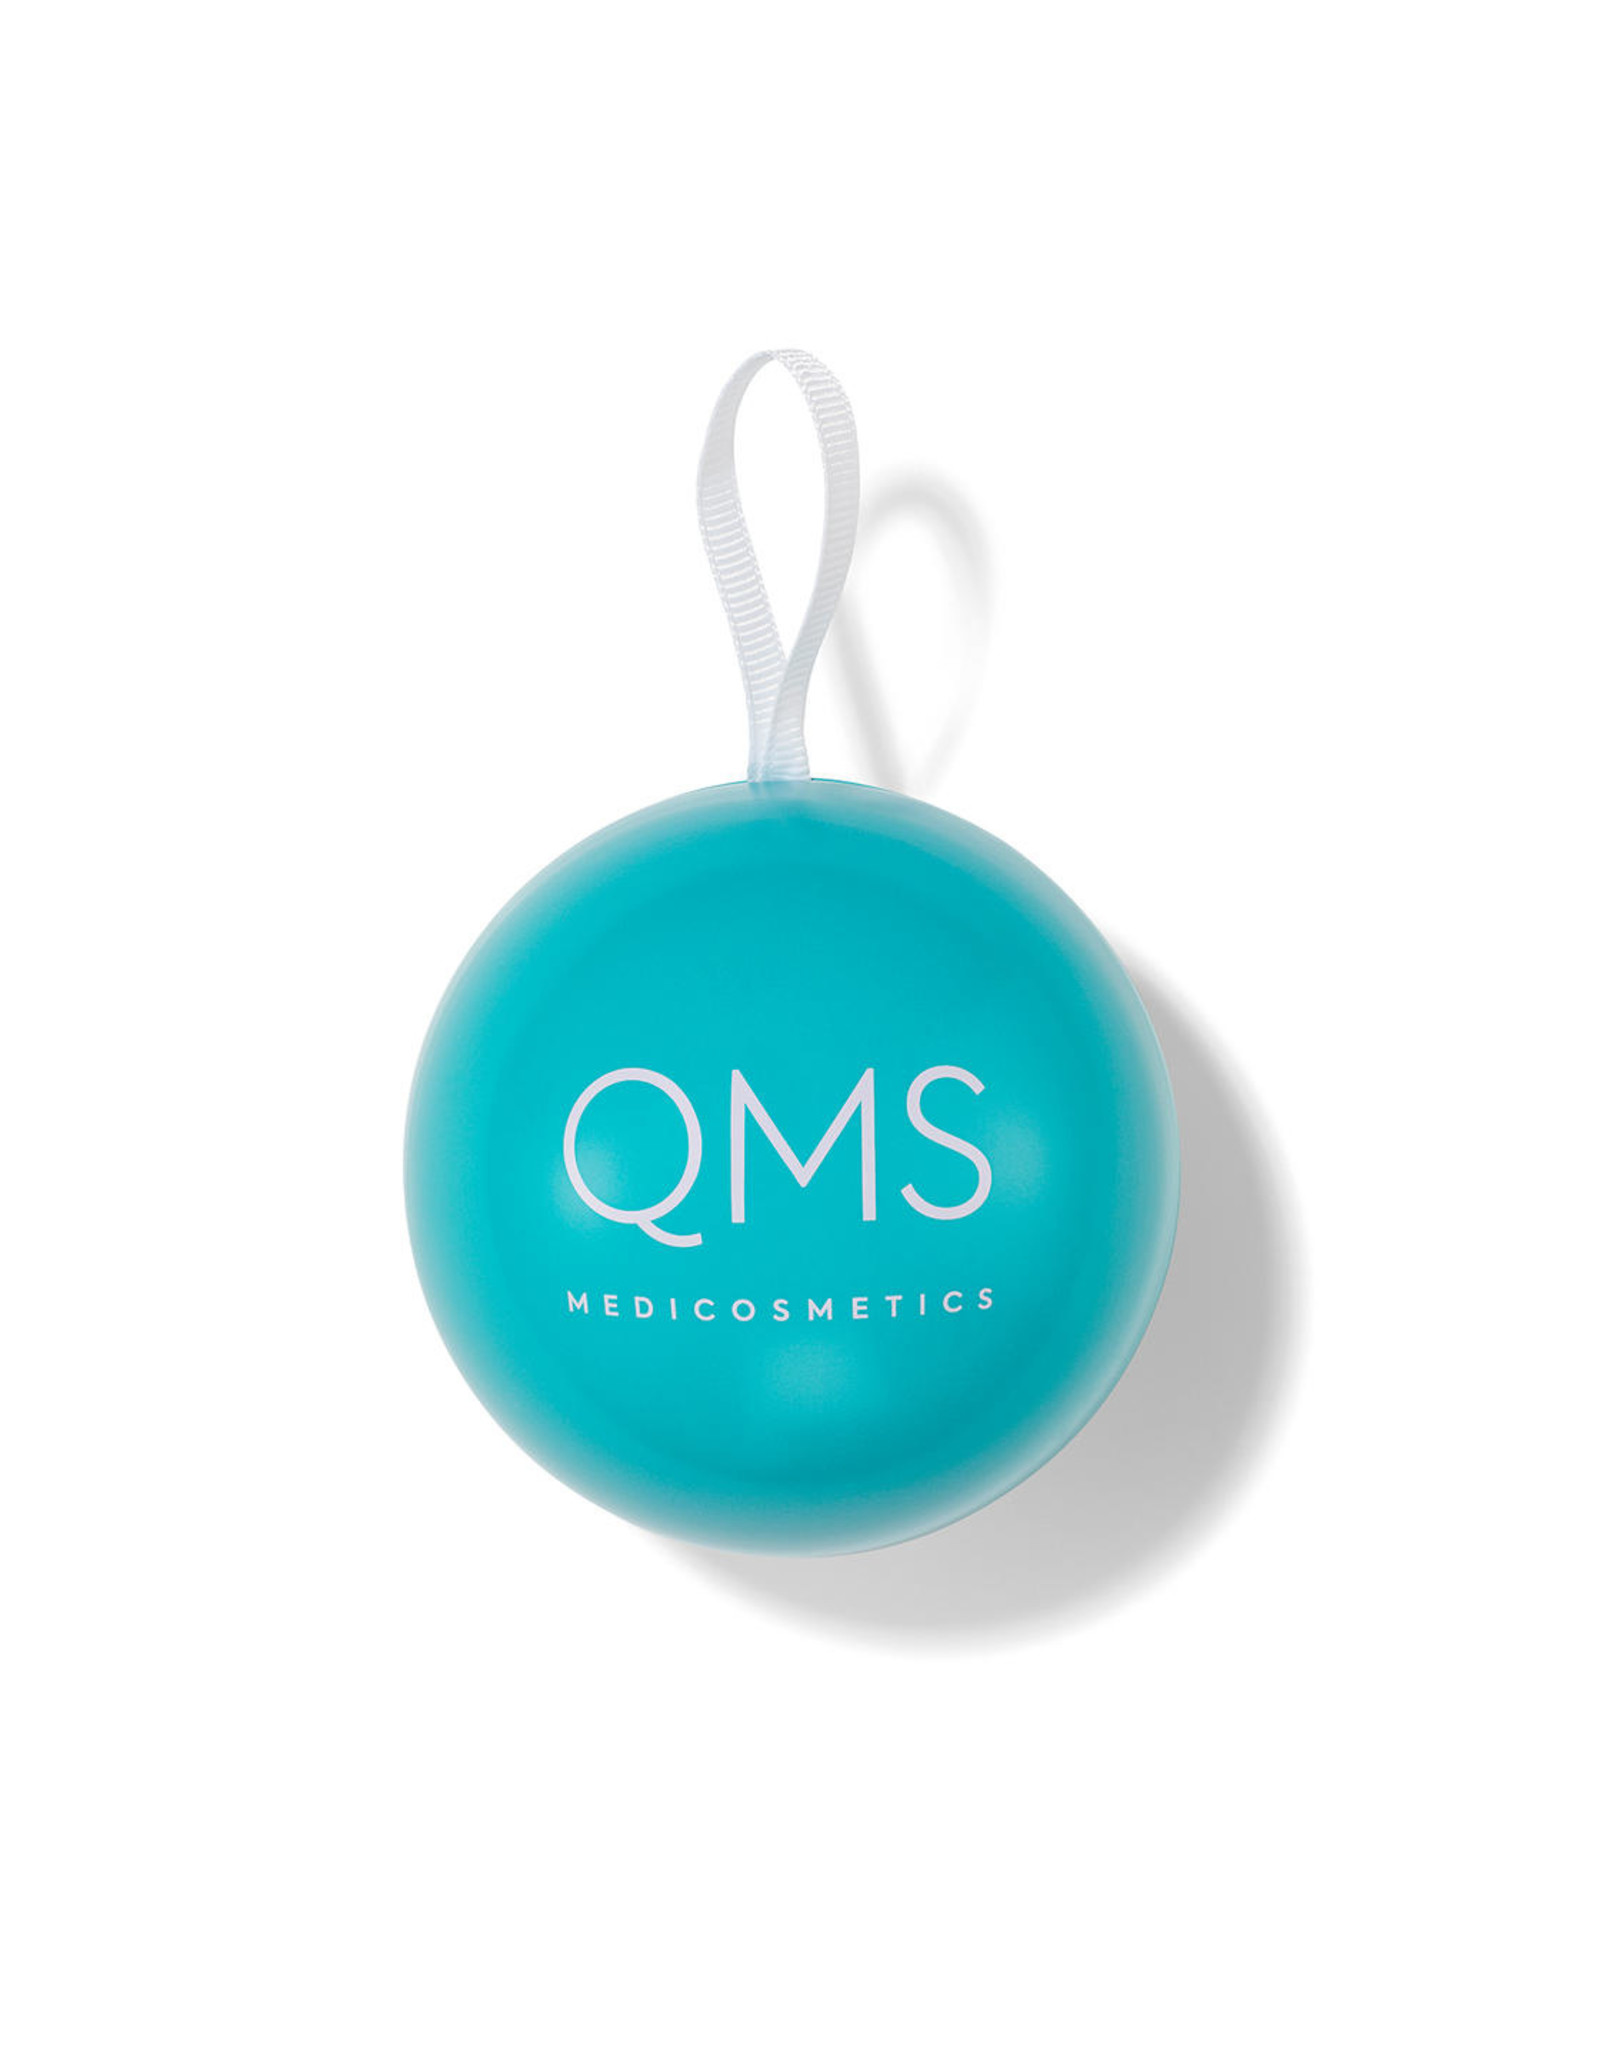 QMS Medicosmetics Collagen Sooth and Restore Treat